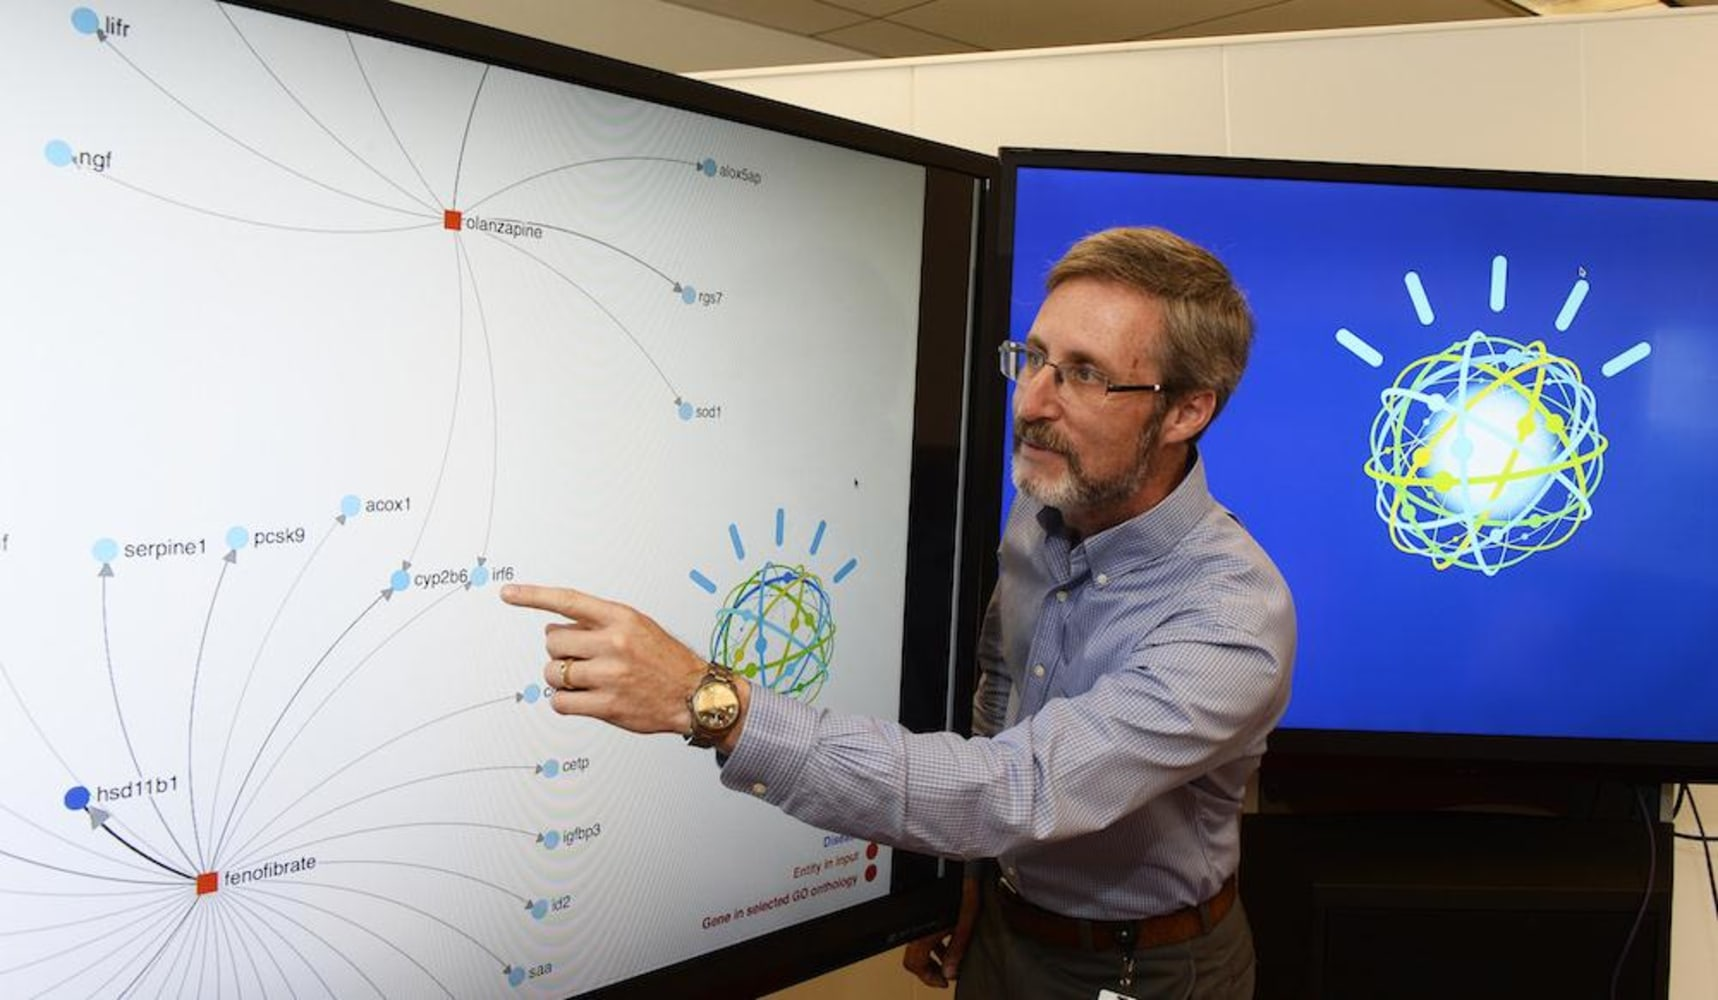 watson being used for medical research